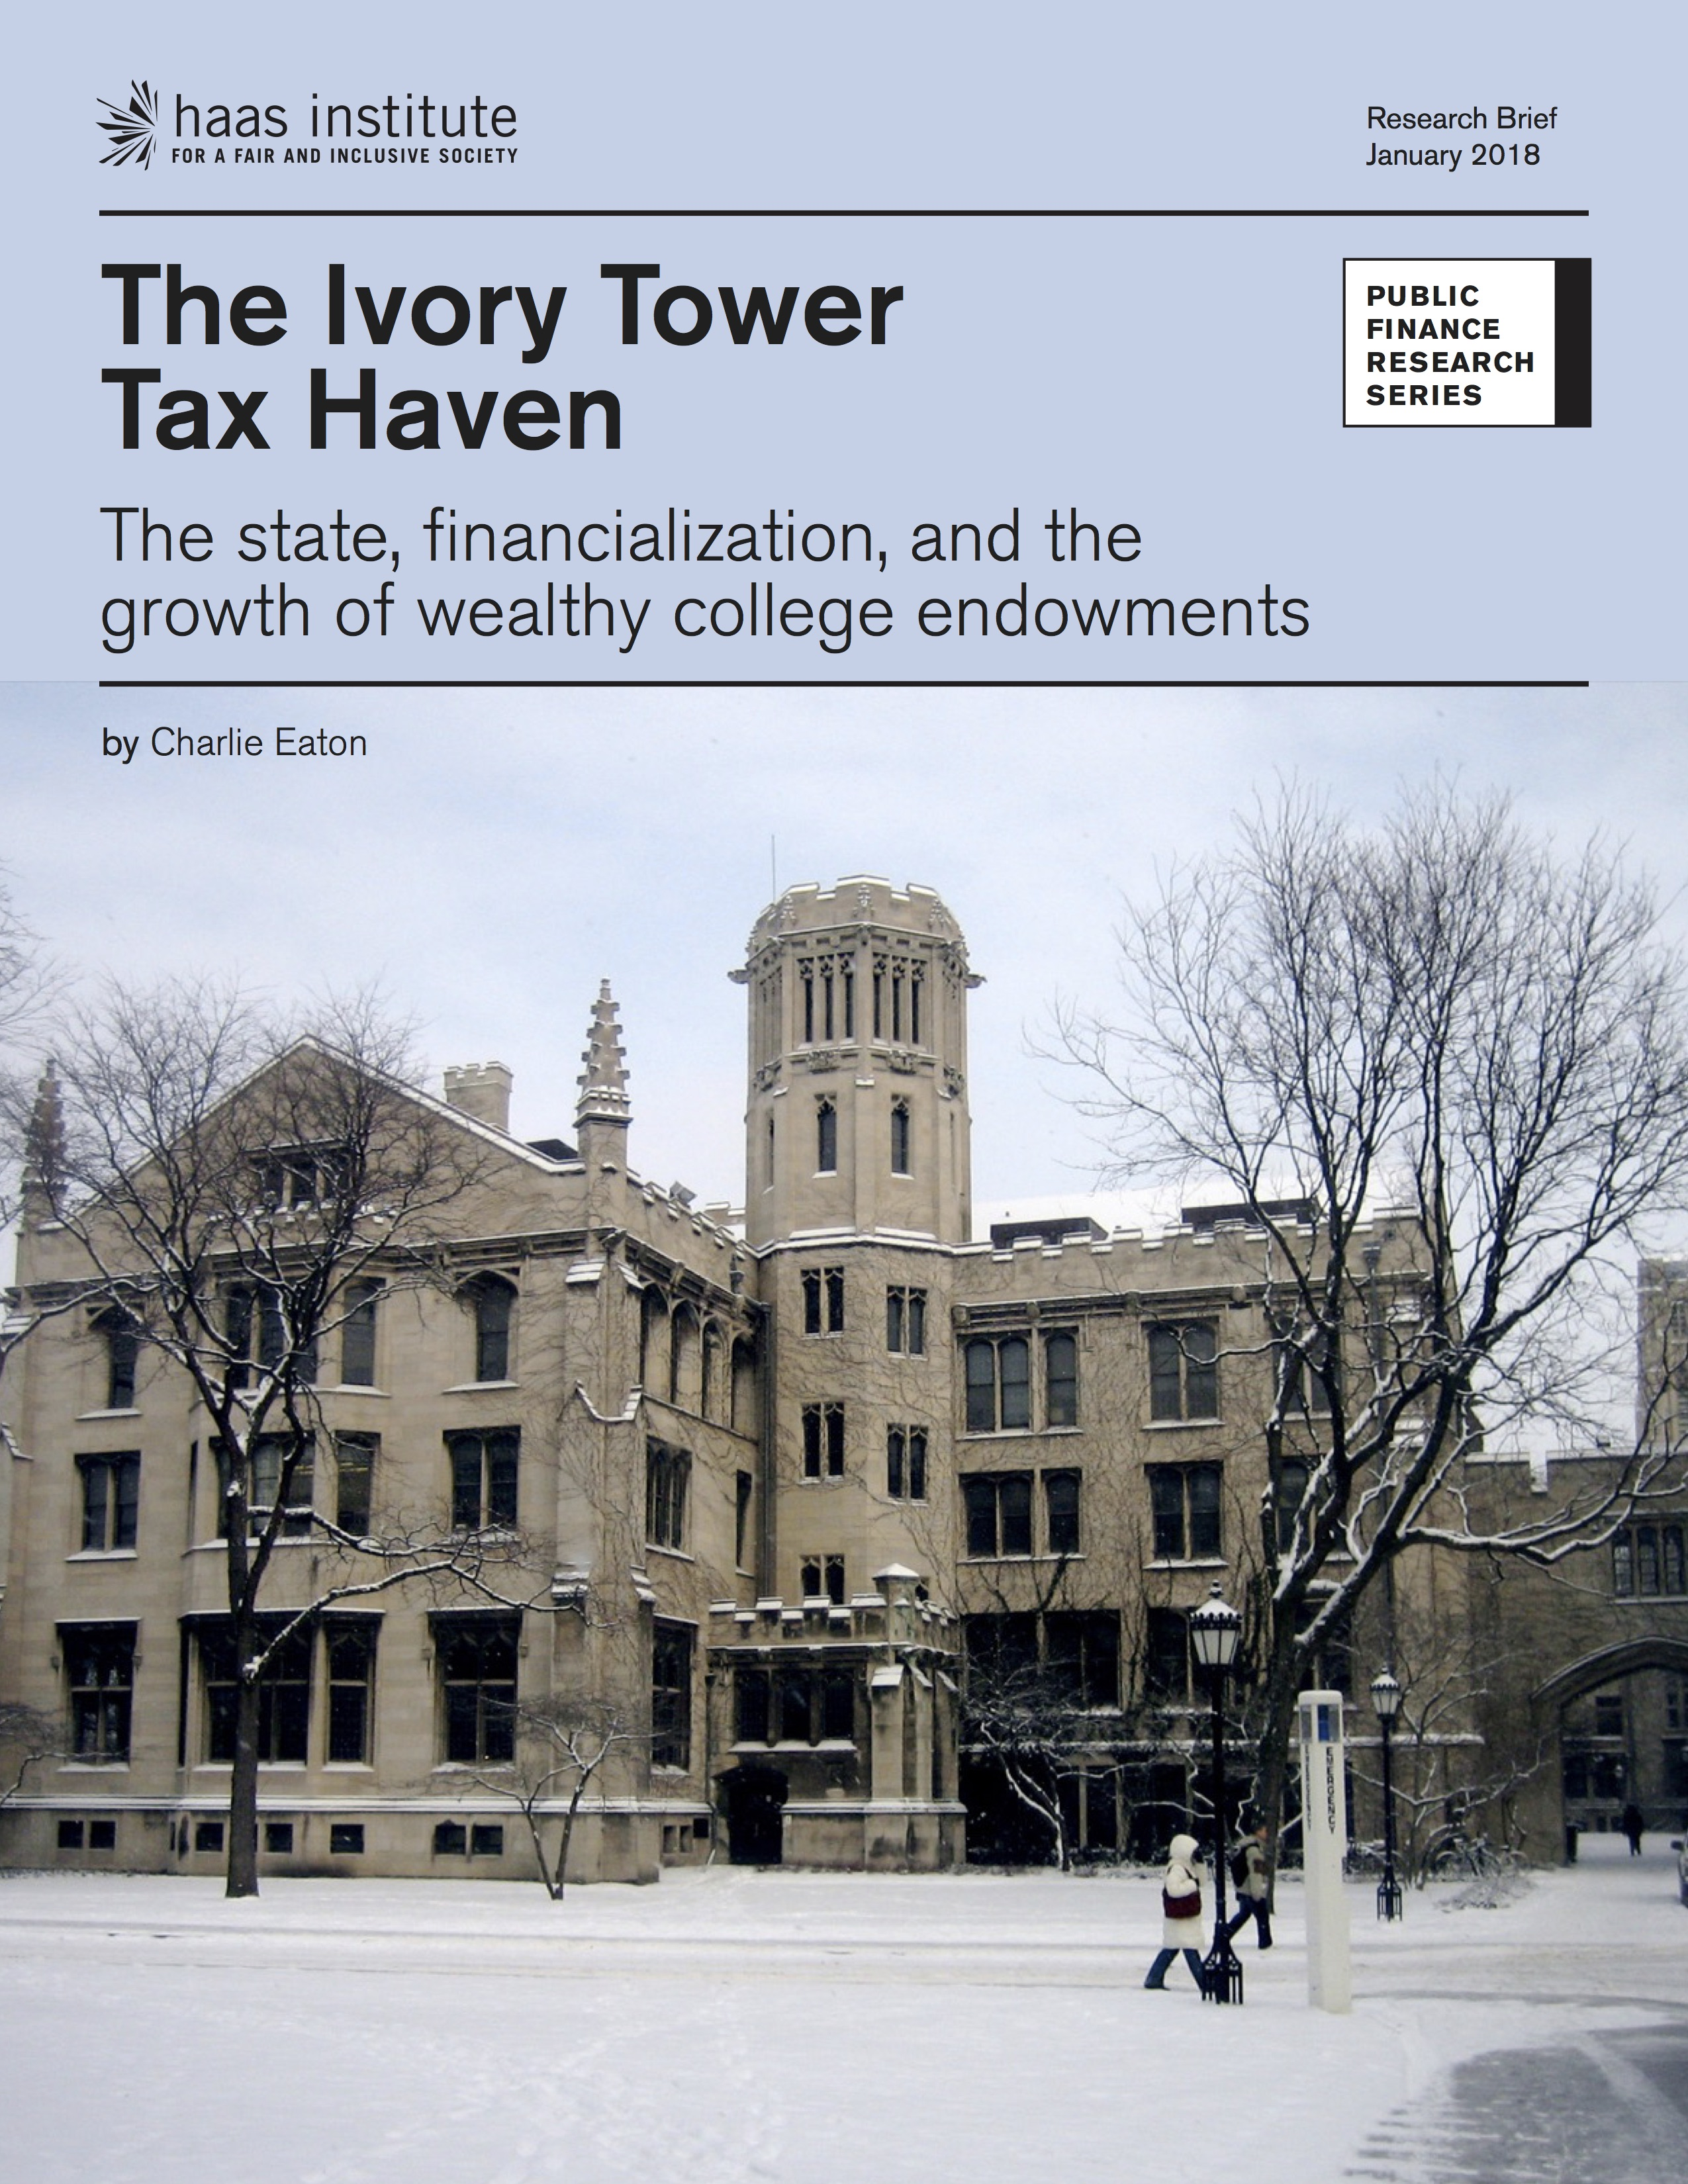 The Ivory Tower Tax Haven